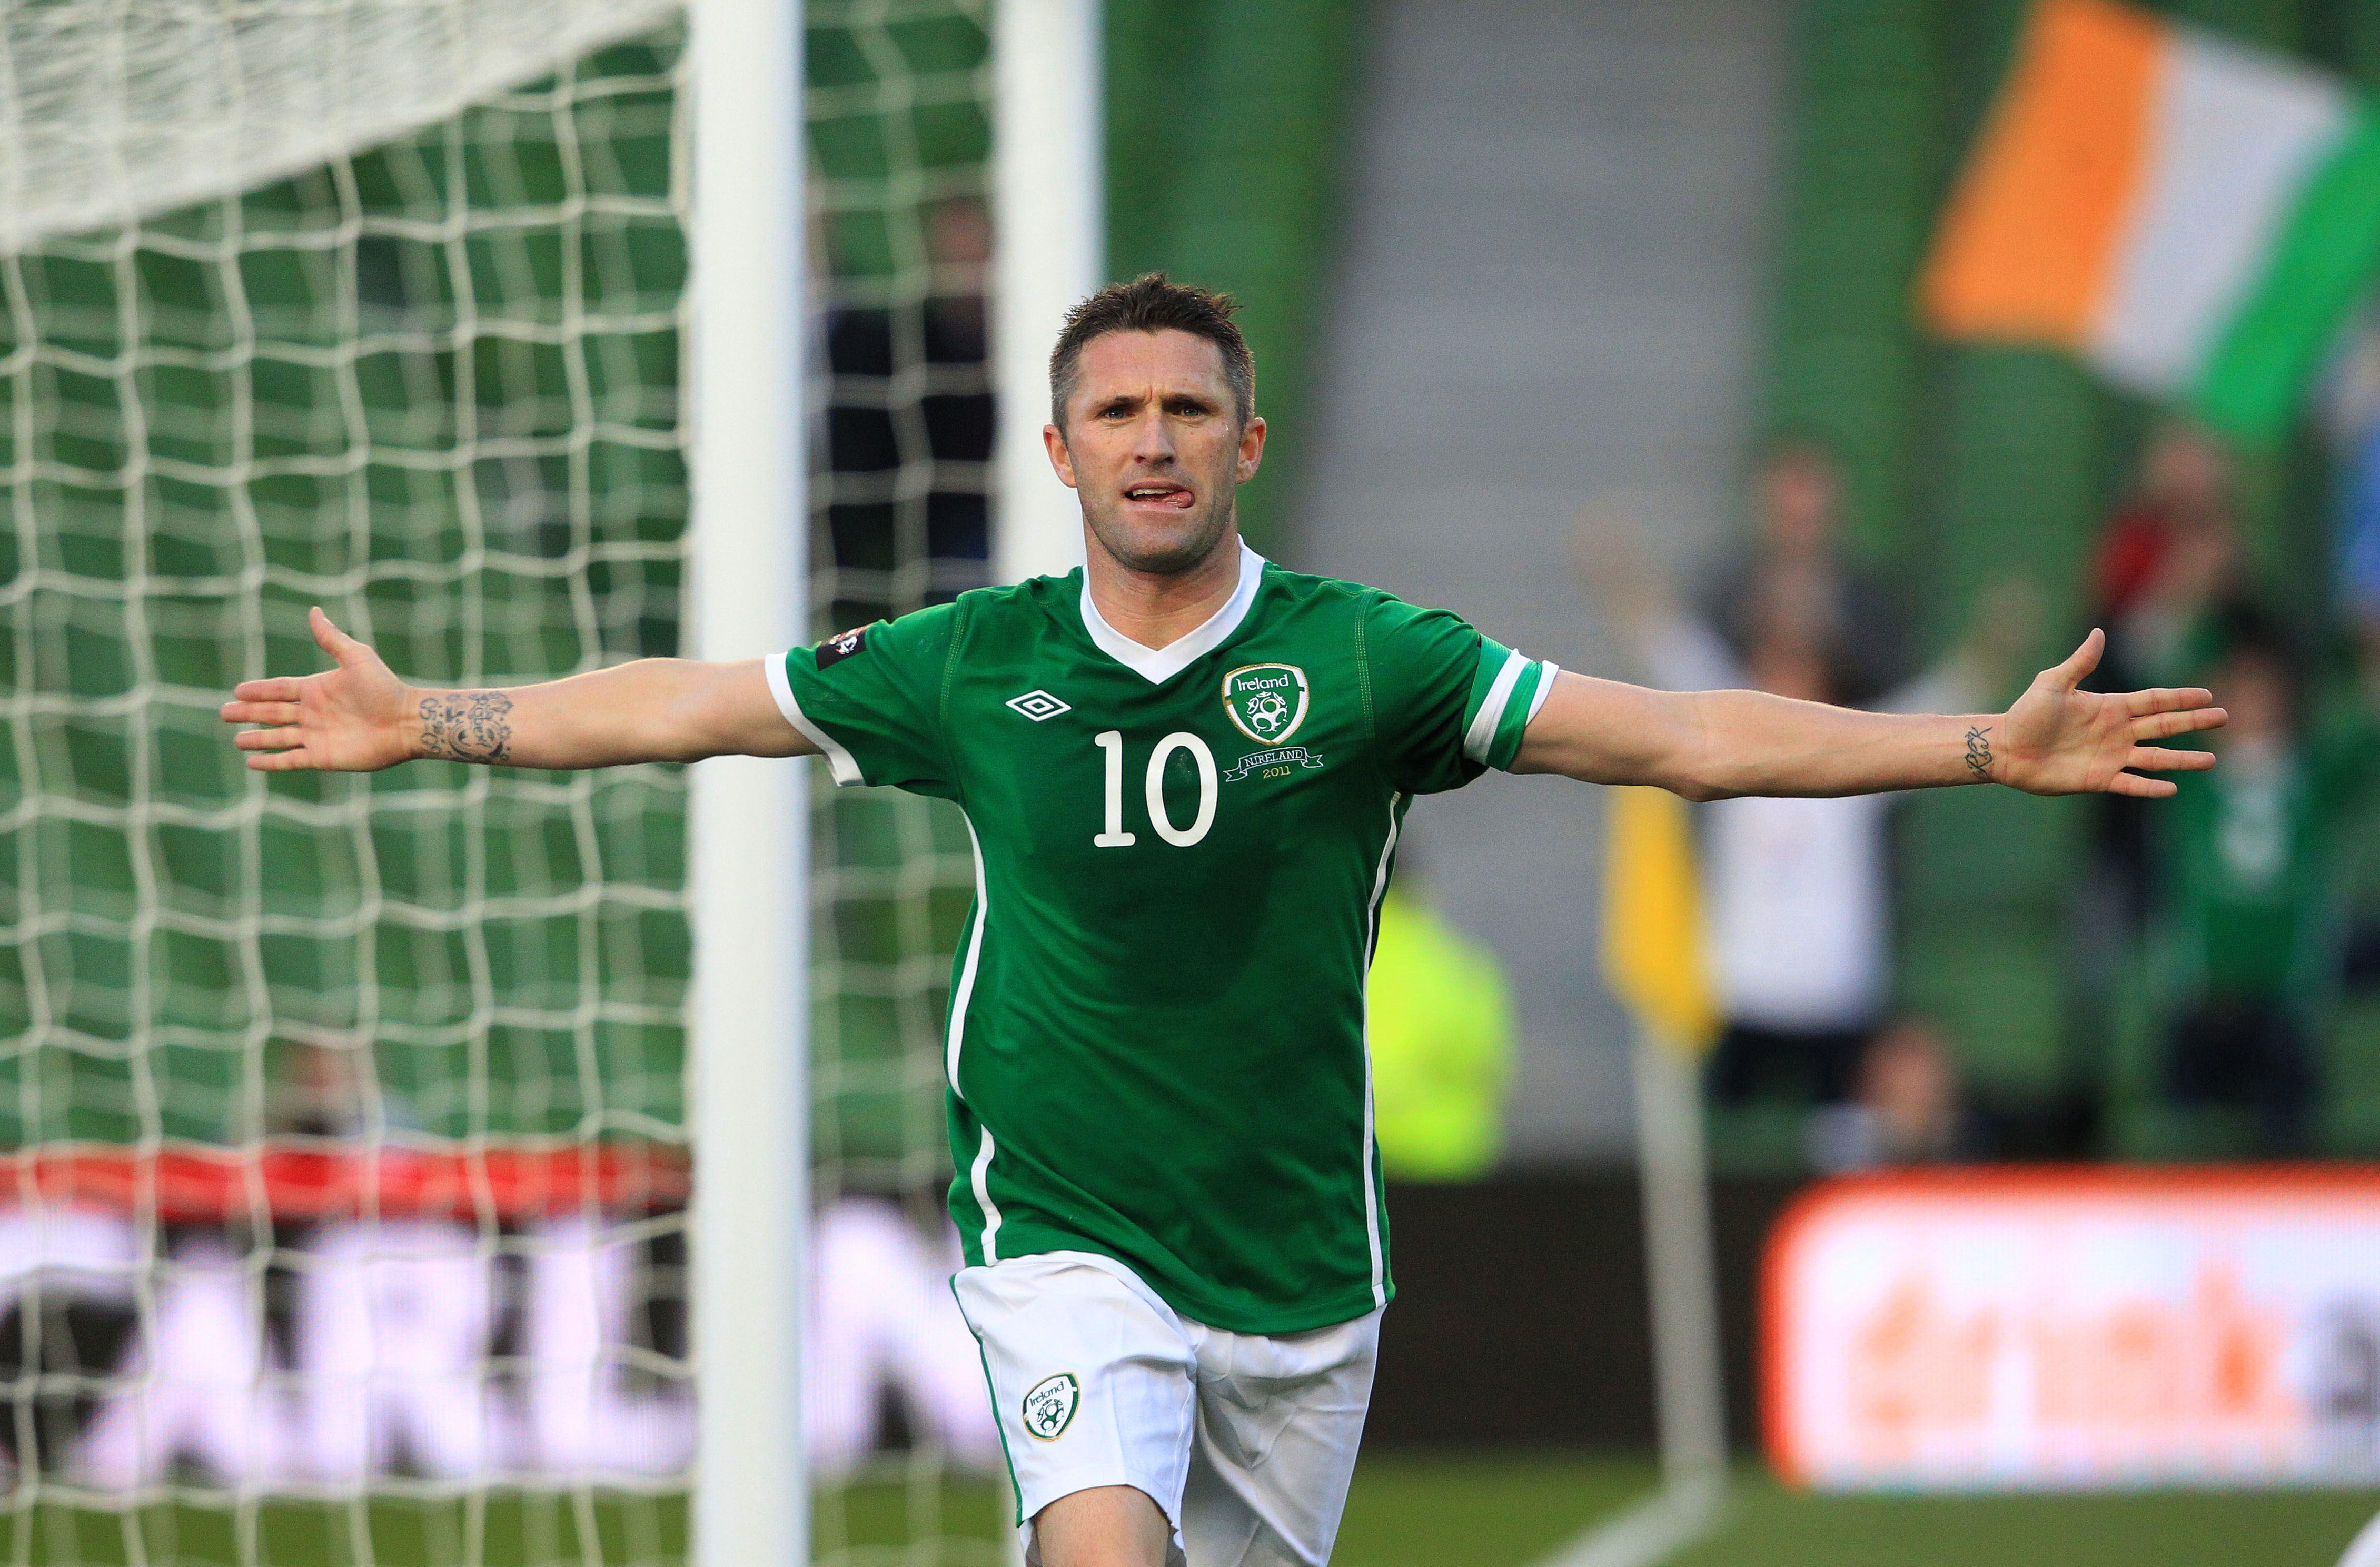 67 GOAL ROBBIE KEANE CALLS TIME ON IRELAND 'It has been a wonderful journey for me to have played with the Irish national team for over eighteen years since I made my senior international debut back in 1998. I have enjoyed it all.'